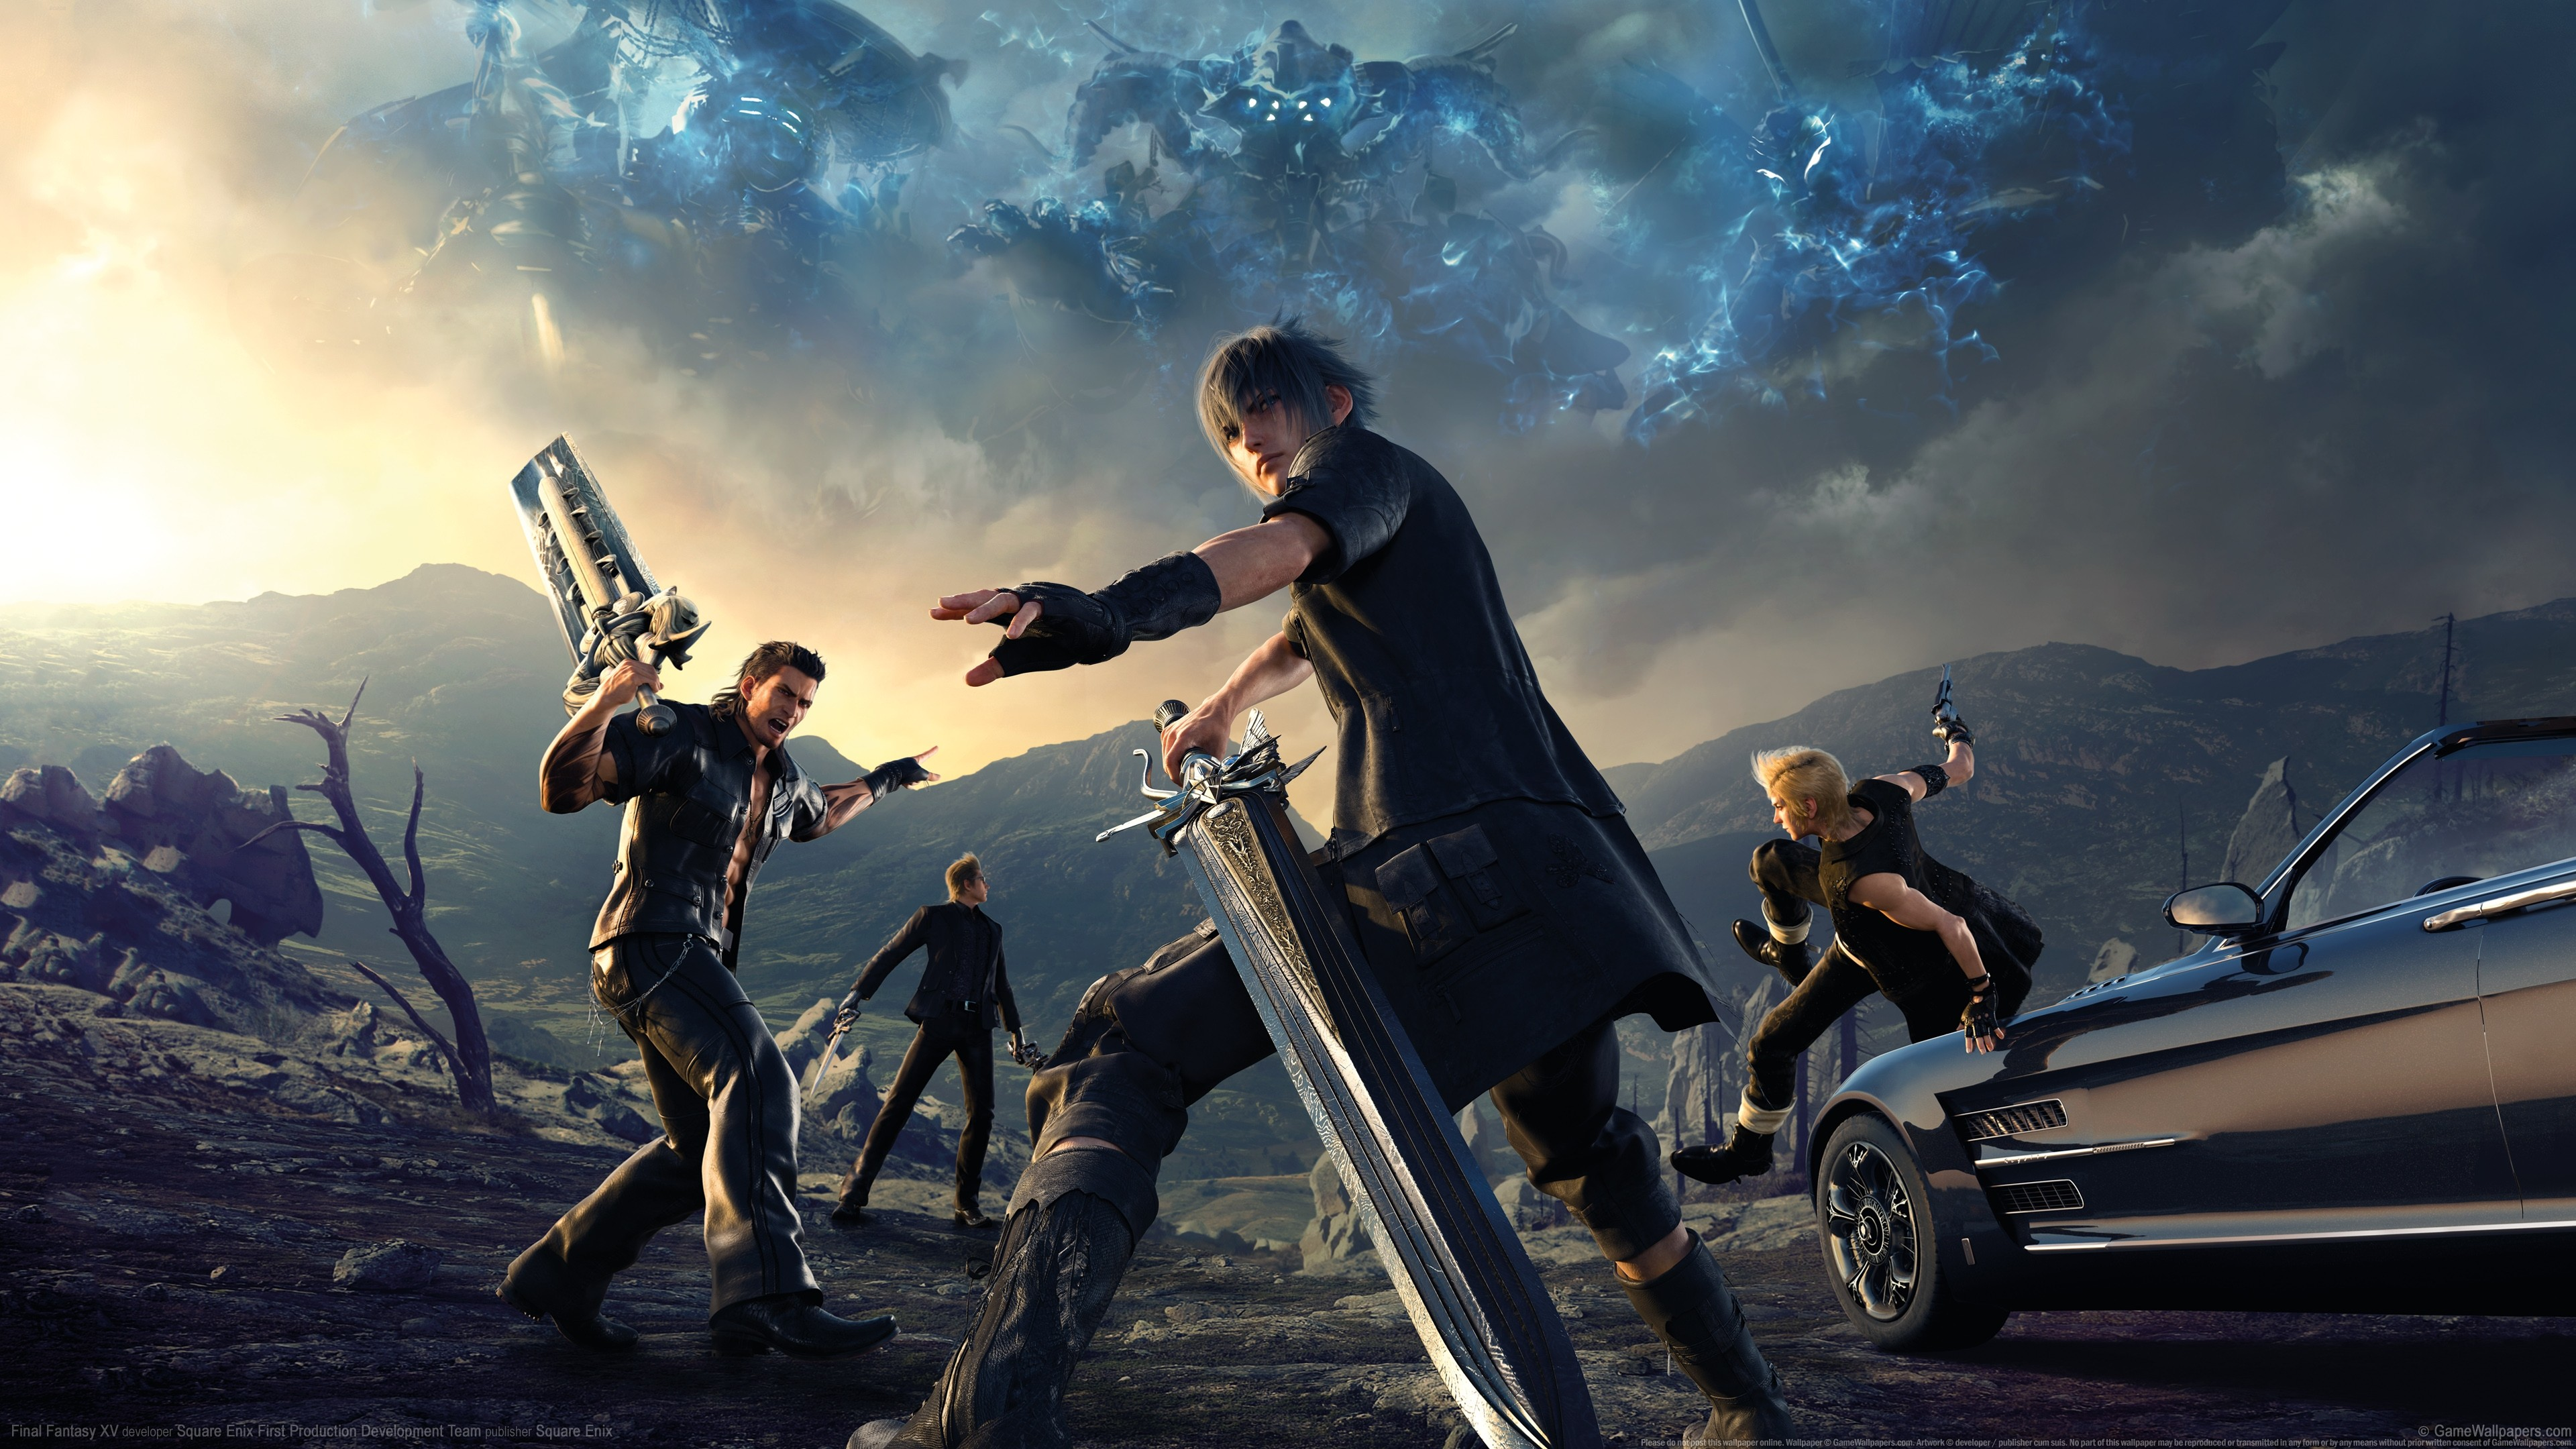 final fantasy xv ps4, hd games, 4k wallpapers, images, backgrounds